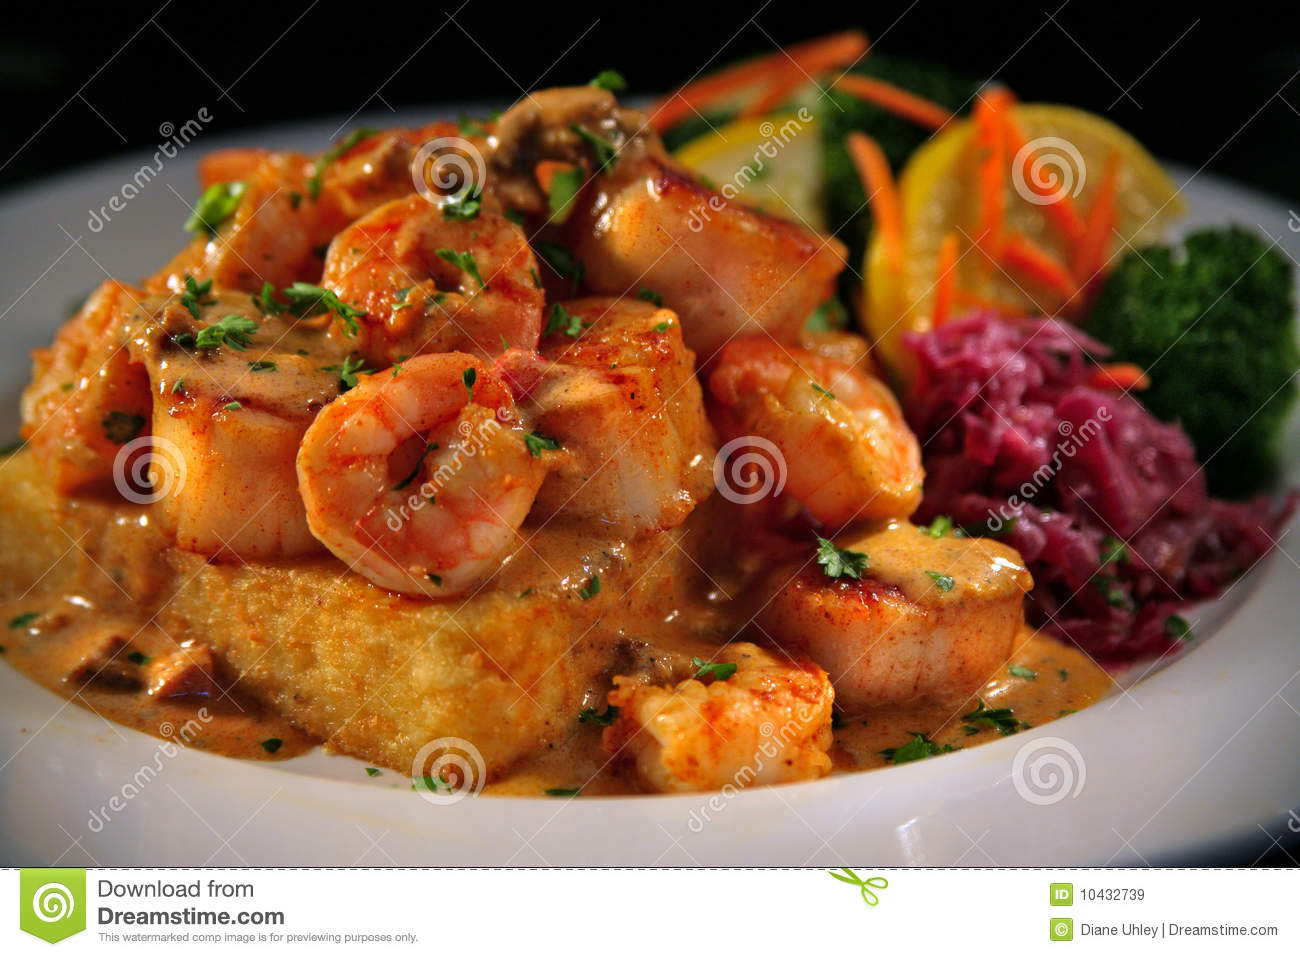 Grit Cakes And Shrimp With Veggies Royalty Free Stock Images - Image ...